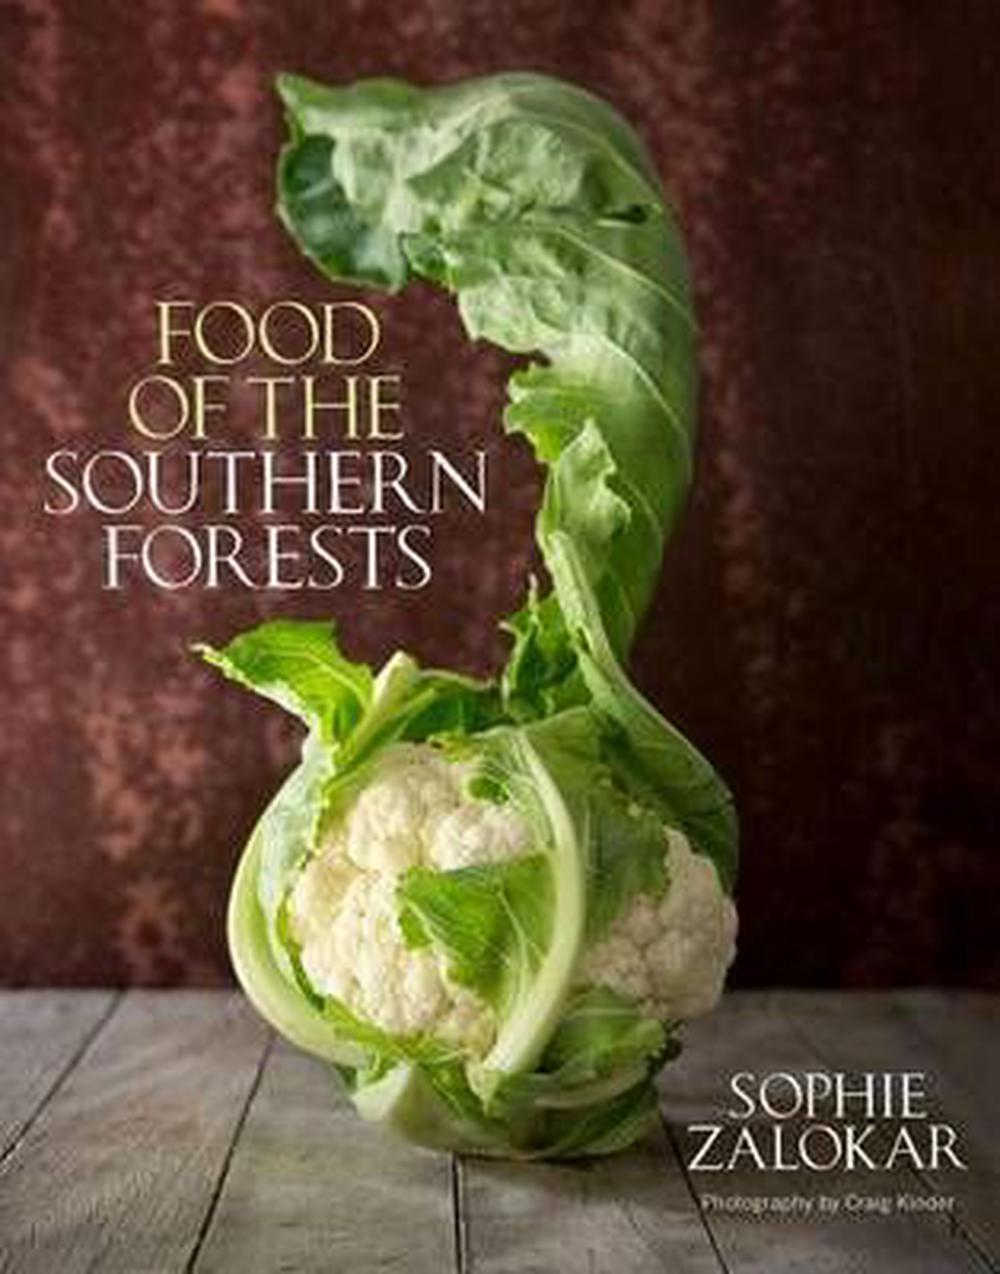 Food of the Southern Forests by Sophie Zalokar, ISBN: 9781742585512